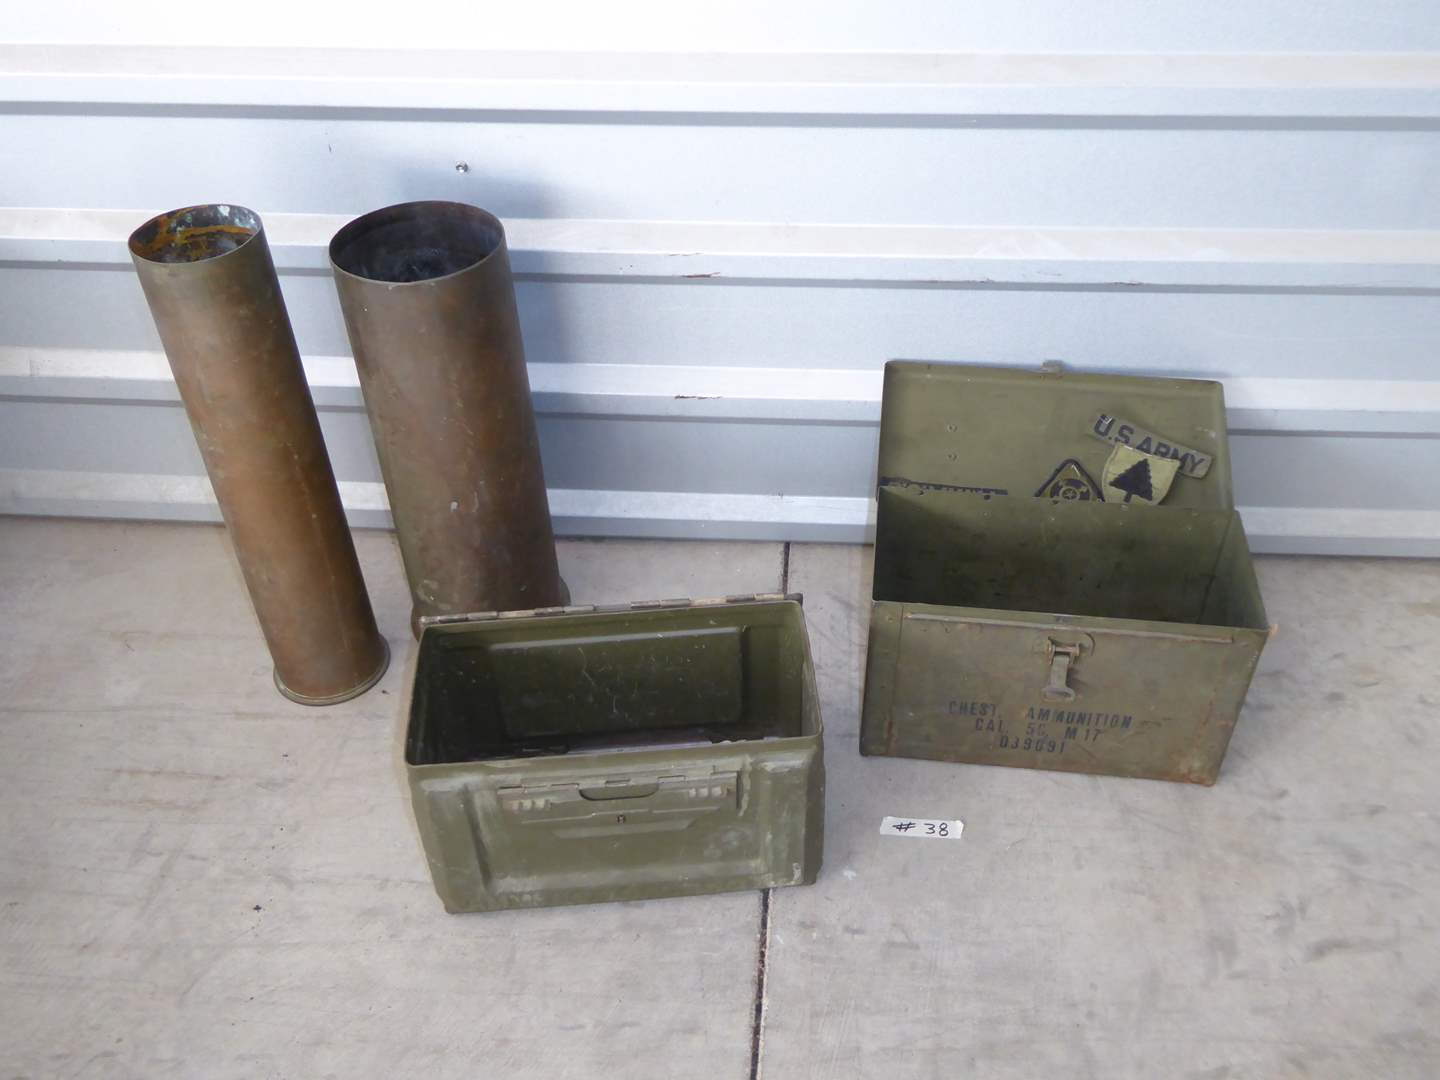 Lot # 38 - Ammo Boxes, US Army Patches & Artillery Shell Casings  (main image)